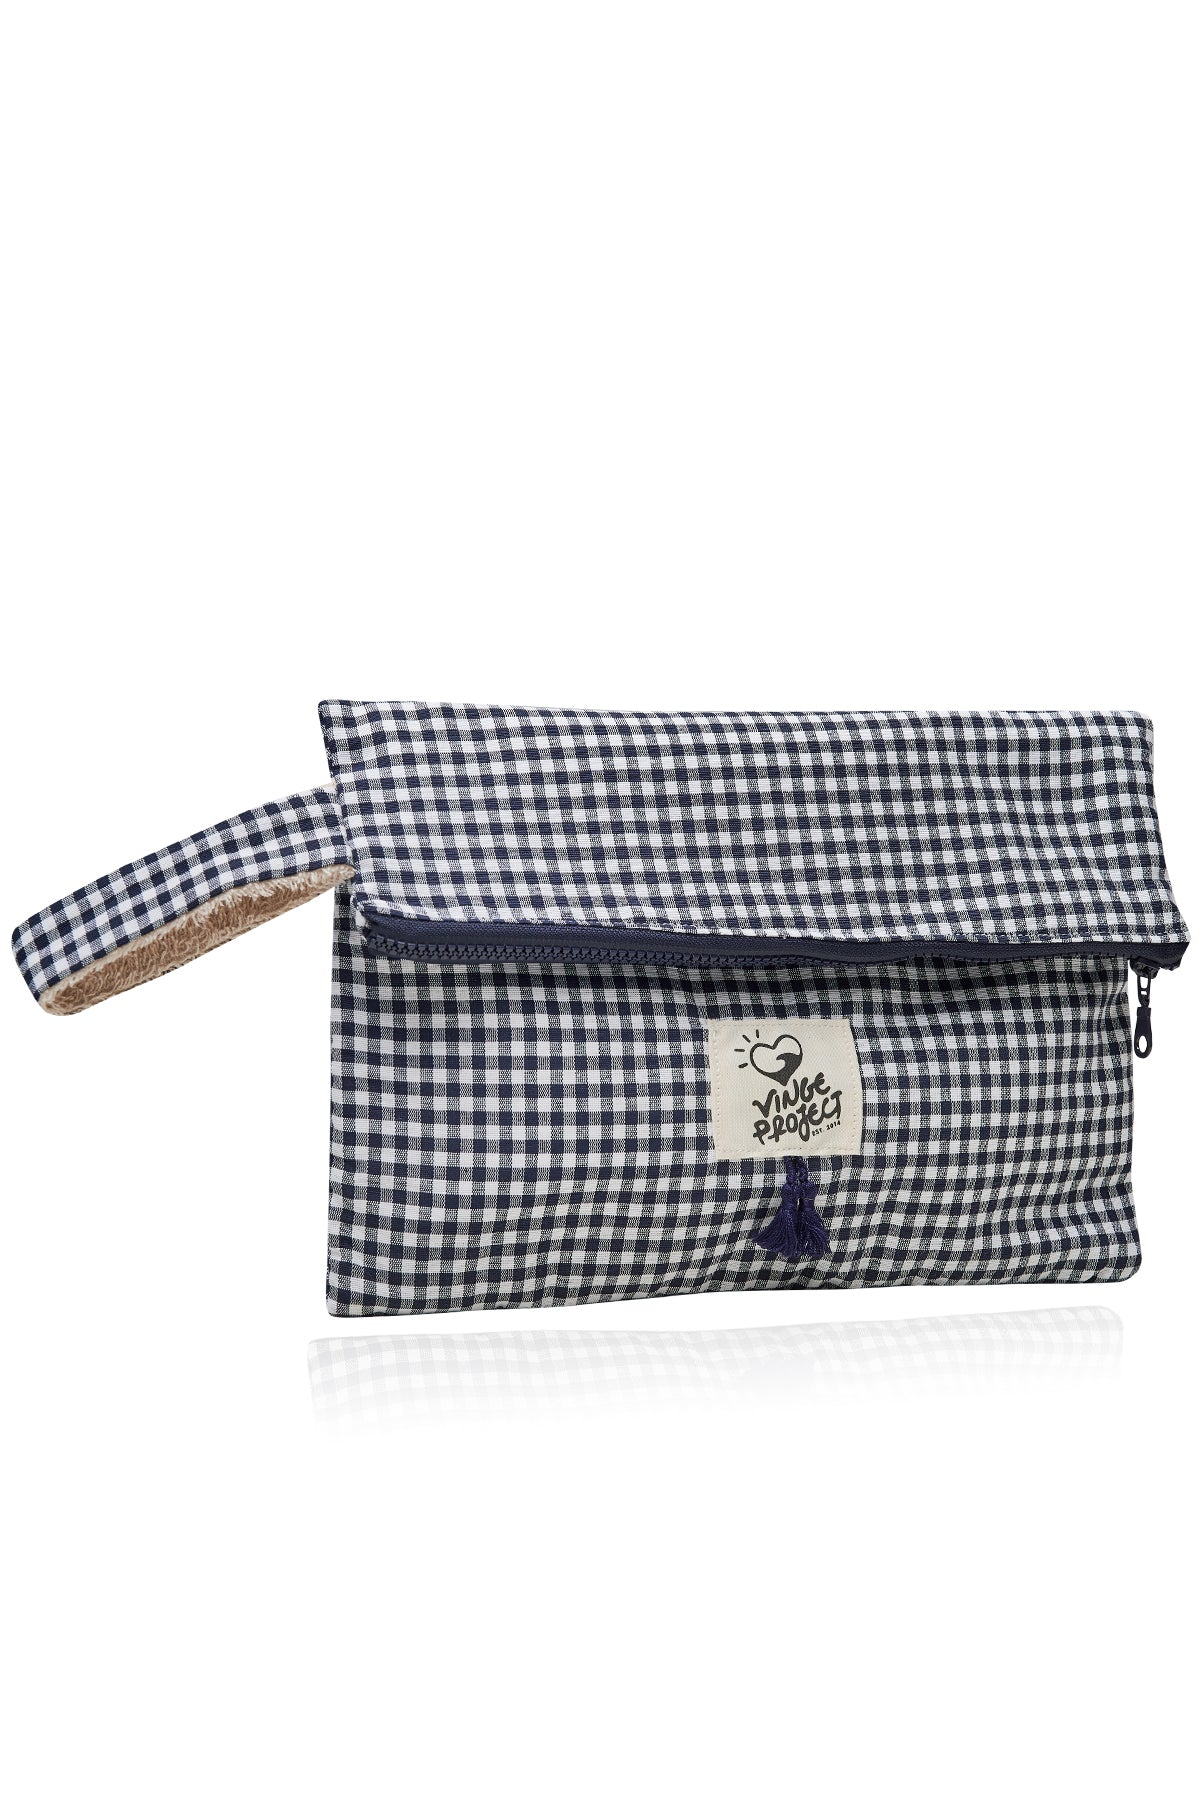 Cycladic in Blue 𝐁𝐢𝐠 Waterproof Clutch Bag ( 2 𝗟𝗔𝗦𝗧 𝗜𝗧𝗘𝗠𝗦 )